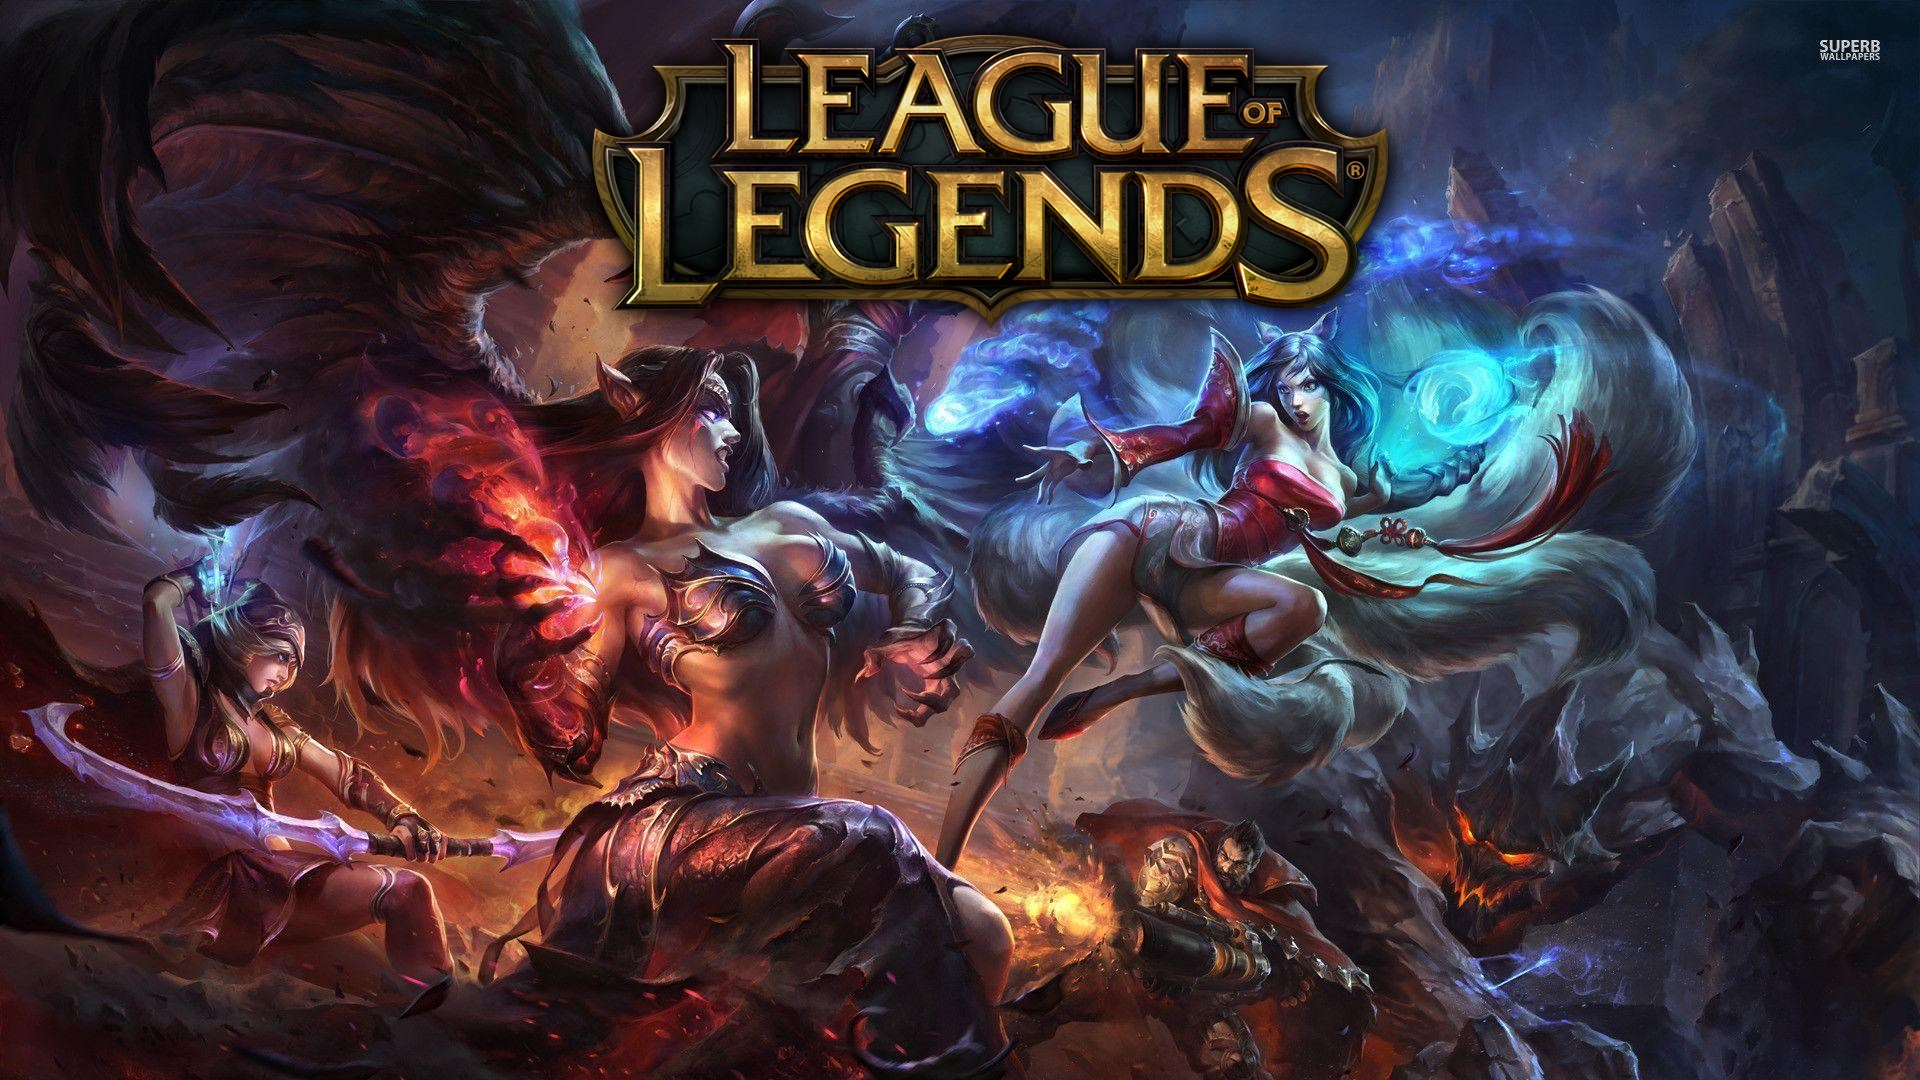 FPS Benchmarks] League Of Legends on NVIDIA GeForce RTX 3070 (100W) and RTX 3060 (100W) – the RTX 3070 is 24% faster on Very High quality